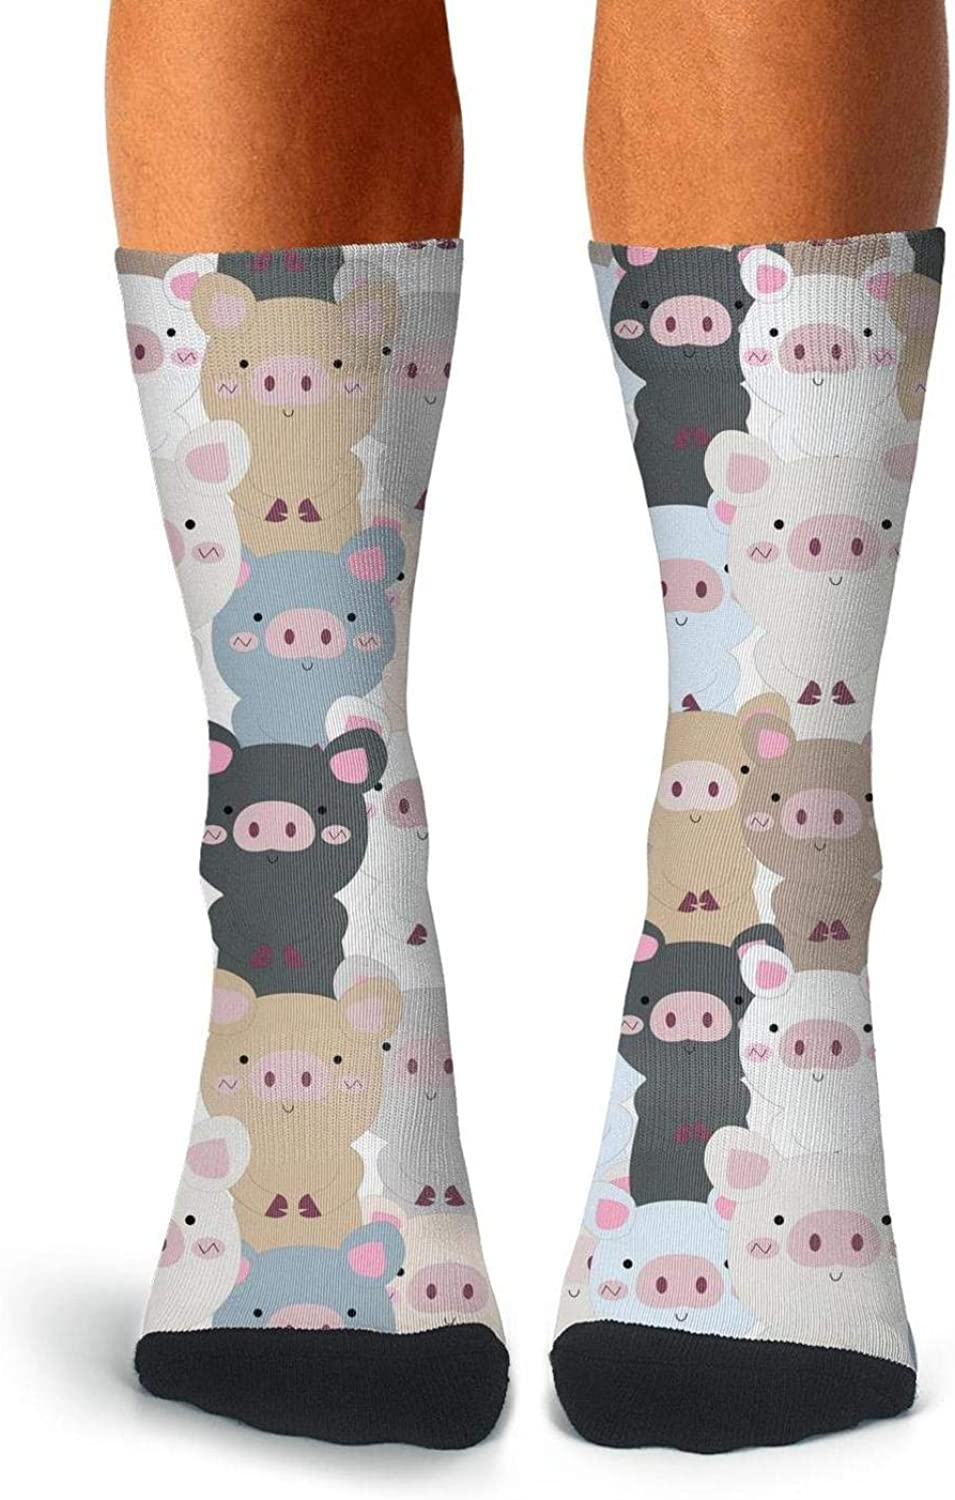 Adult Cute Pink Pig Nose with Happy New Year Socks Warm Crew Thigh High Socks